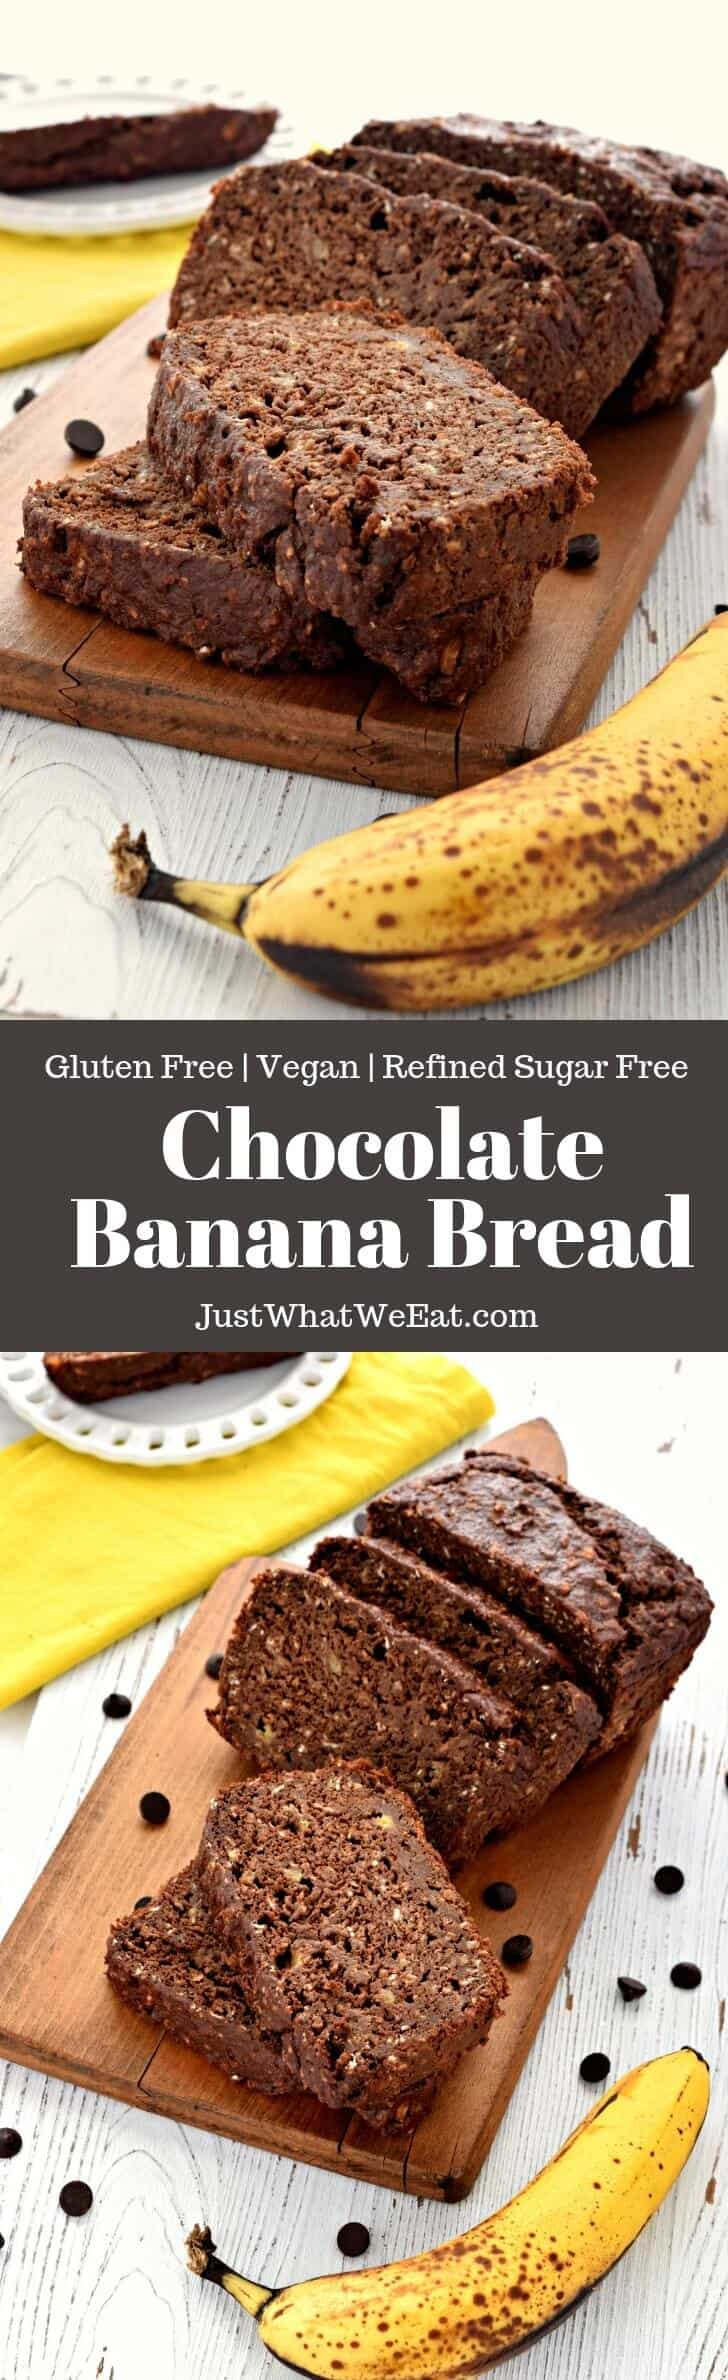 Gluten Free, Vegan, and Dairy Free Chocolate Banana Bread